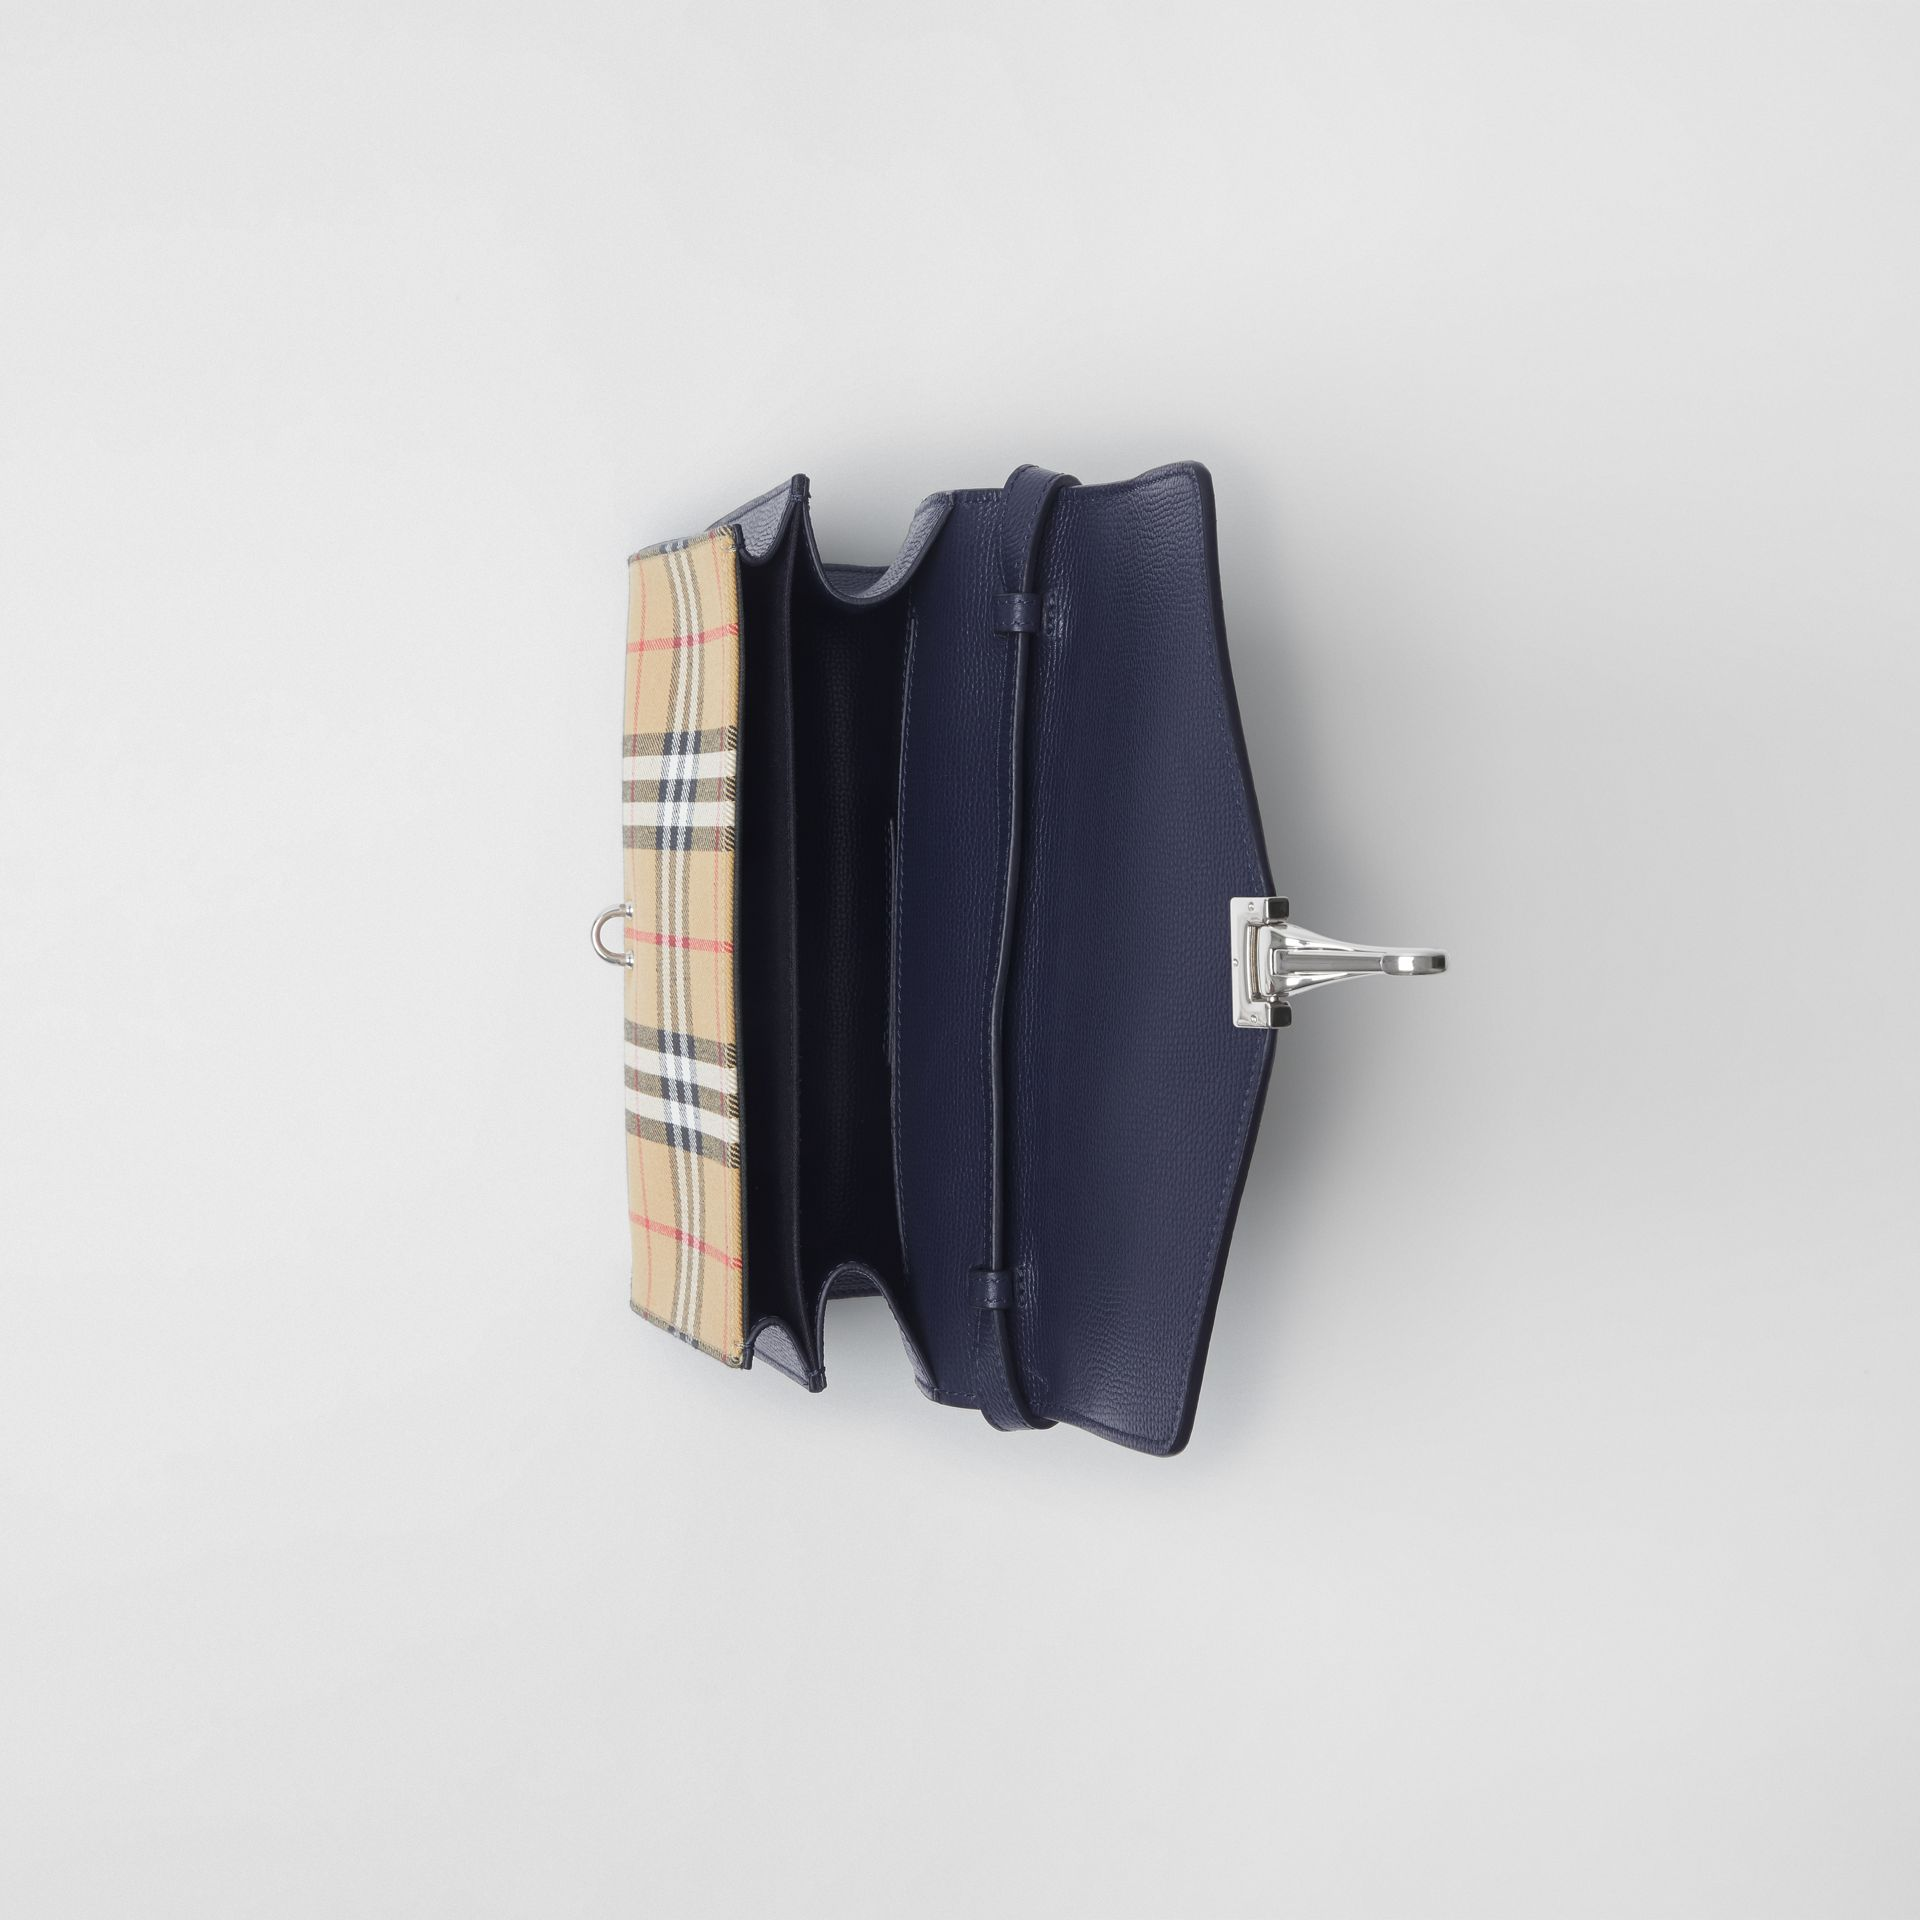 Small Vintage Check and Leather Crossbody Bag in Regency Blue - Women | Burberry - gallery image 3